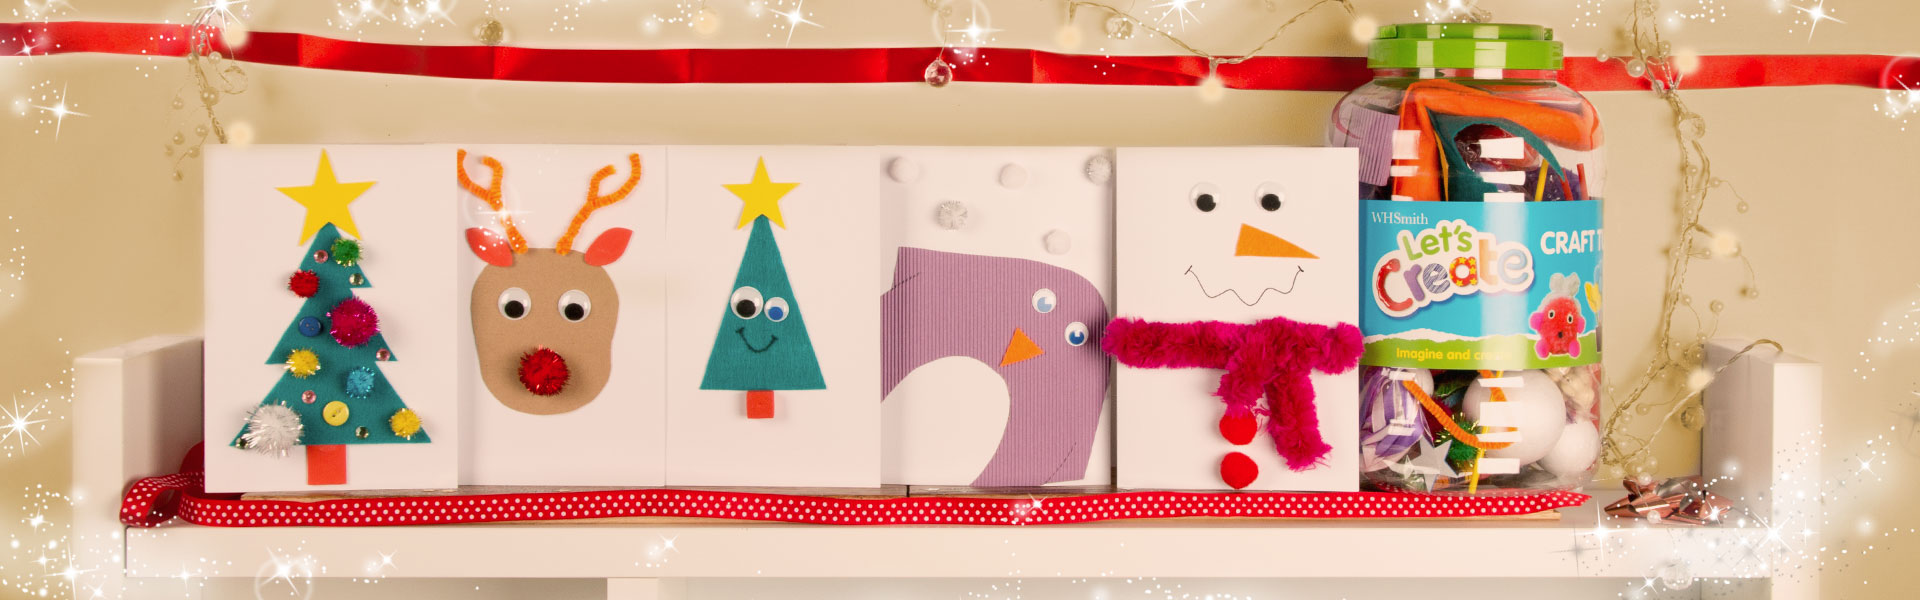 5 Easy Christmas Cards Kids Can Make With One Craft Tub Whsmith Blog